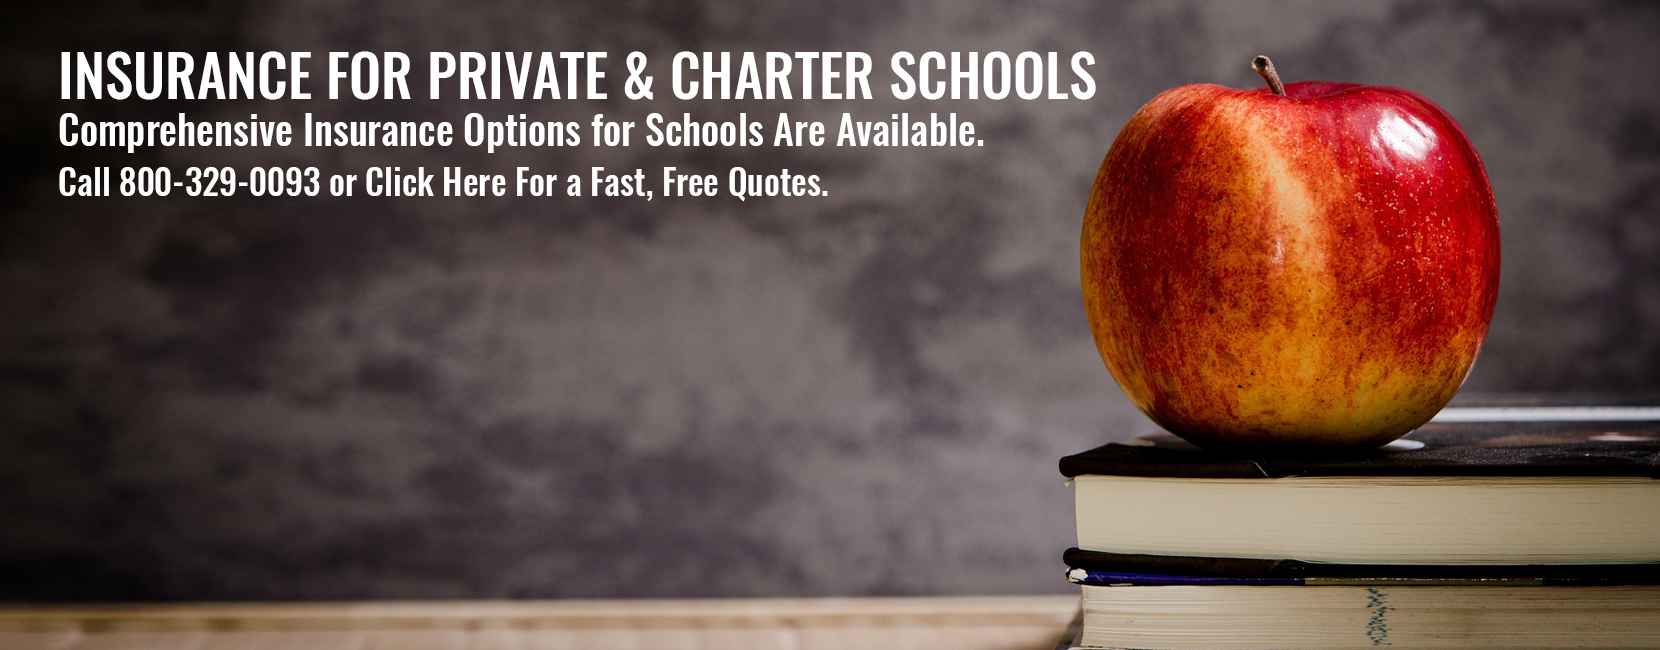 Call 8000-329-0093 for a free quote on insurance for private and charter schools